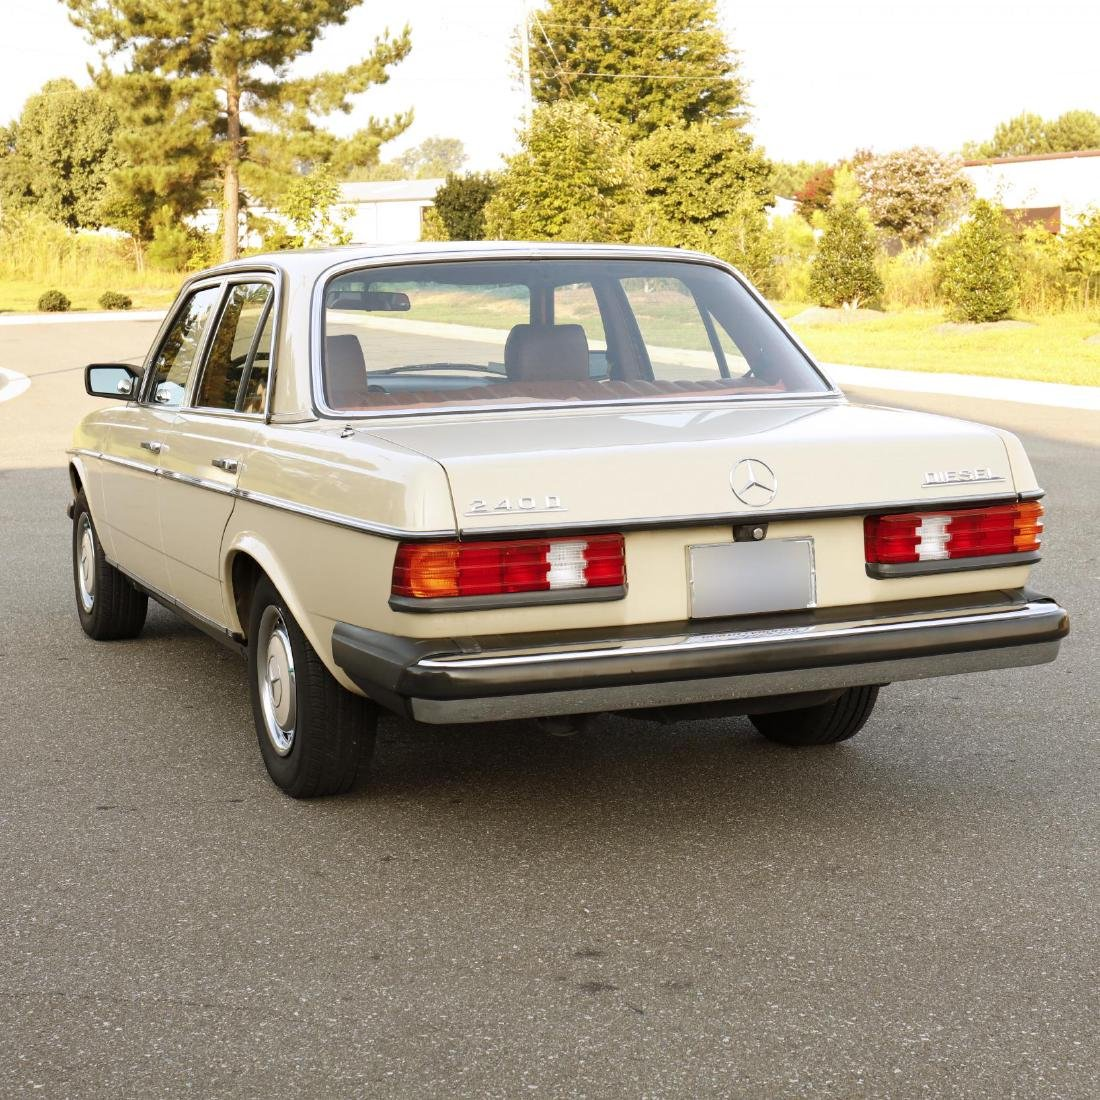 One-Owner 1981 Mercedes Benz 240D - 7